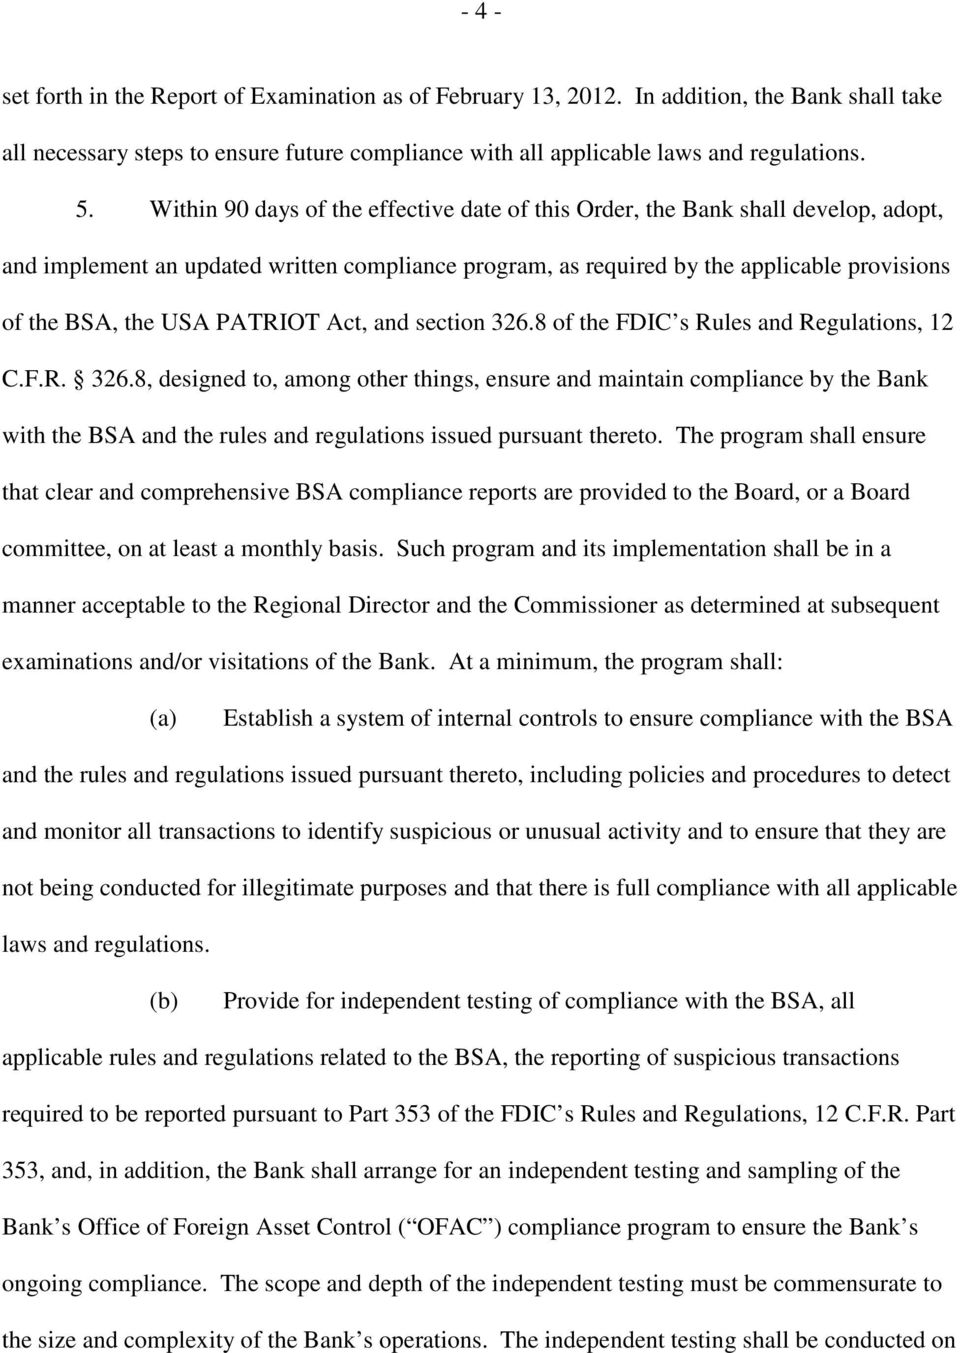 PATRIOT Act, and section 326.8 of the FDIC s Rules and Regulations, 12 C.F.R. 326.8, designed to, among other things, ensure and maintain compliance by the Bank with the BSA and the rules and regulations issued pursuant thereto.